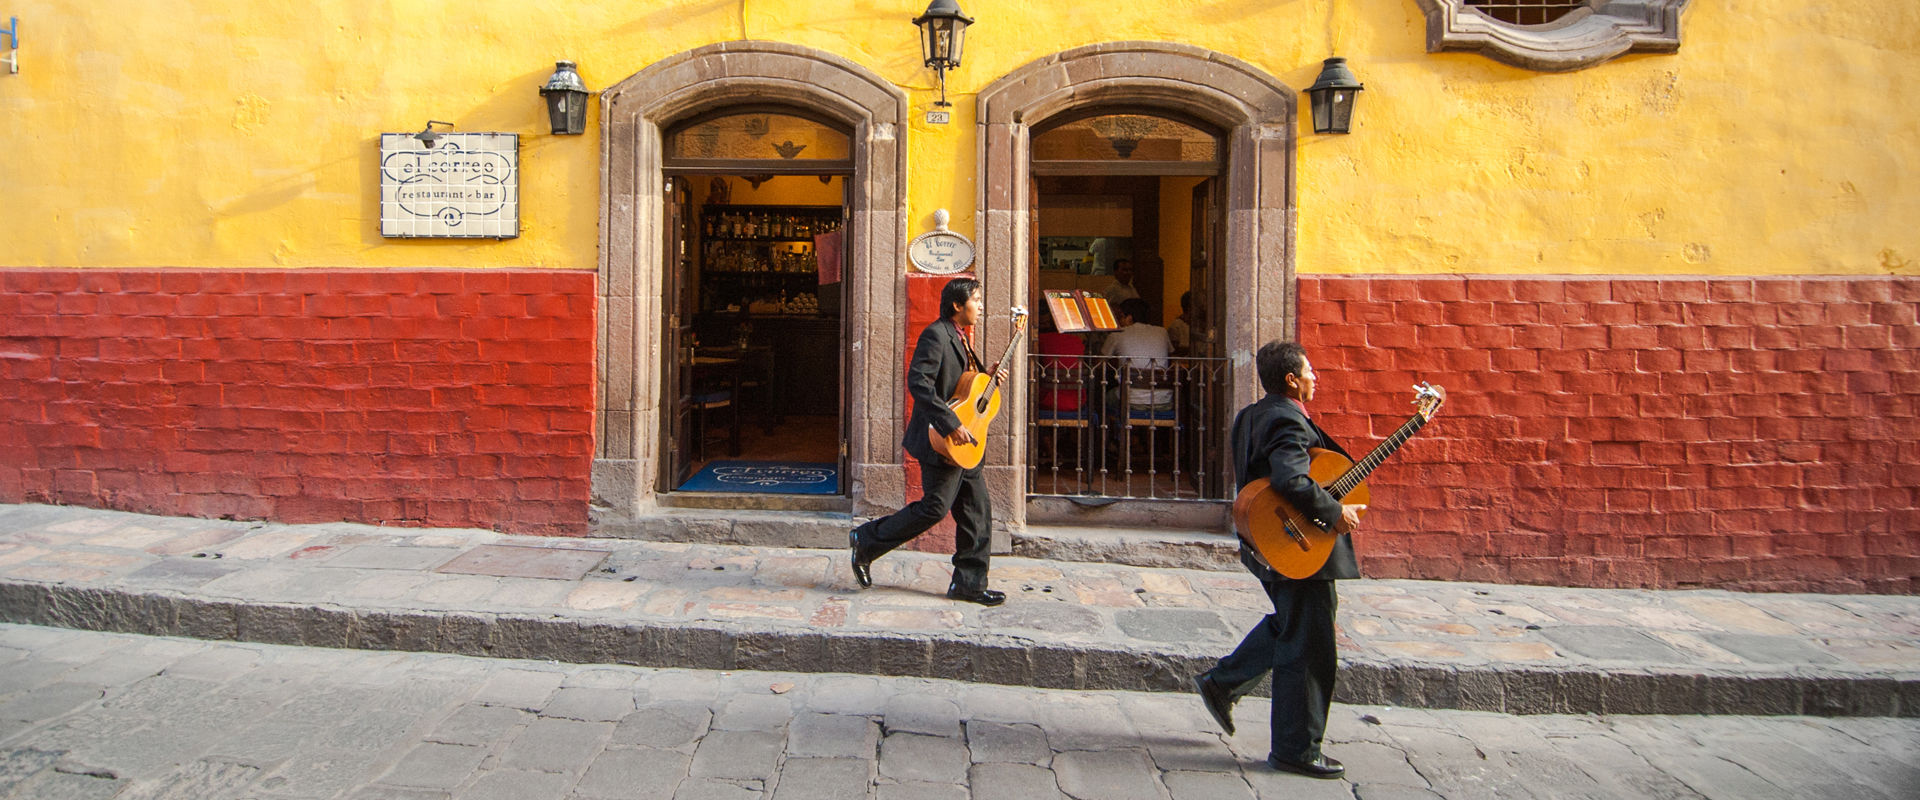 The Grantourismo Travel Guide to San Miguel de Allende, Mexico. Copyright © 2017 Terence Carter / Grantourismo. All Rights Reserved.